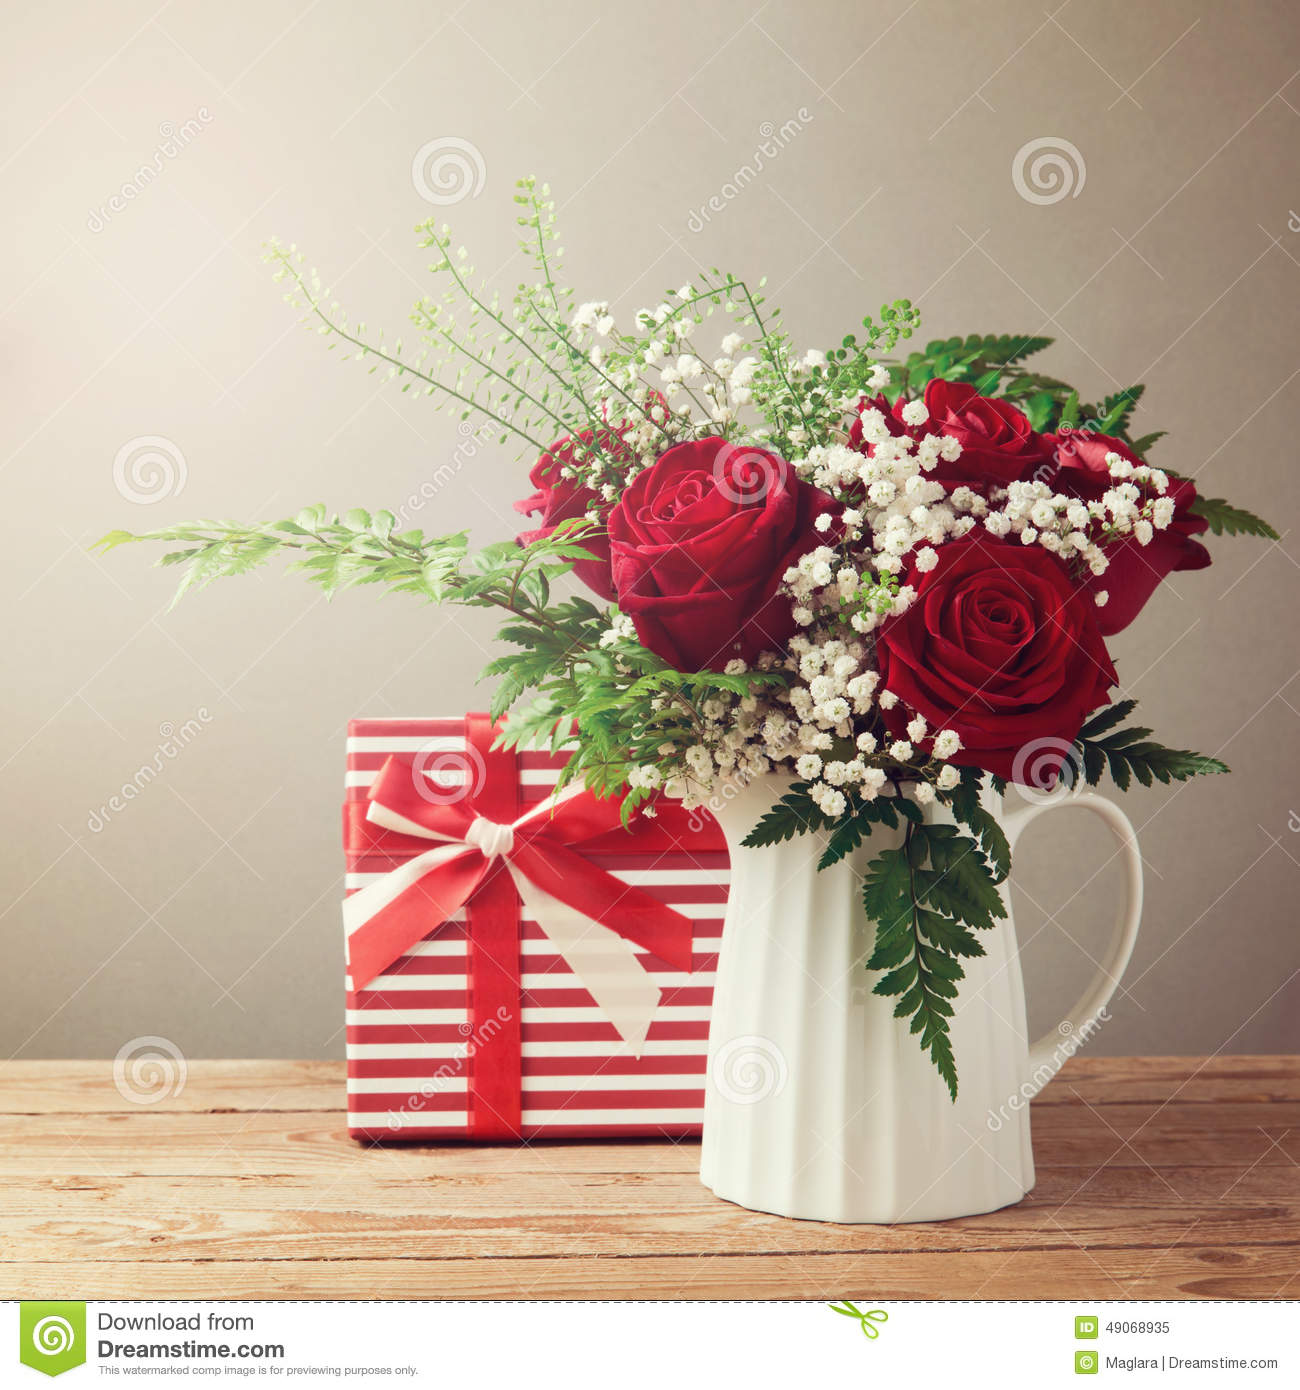 Rose Flower Bouquet And Gift Box On Wooden Table Stock Photo Image 49068935